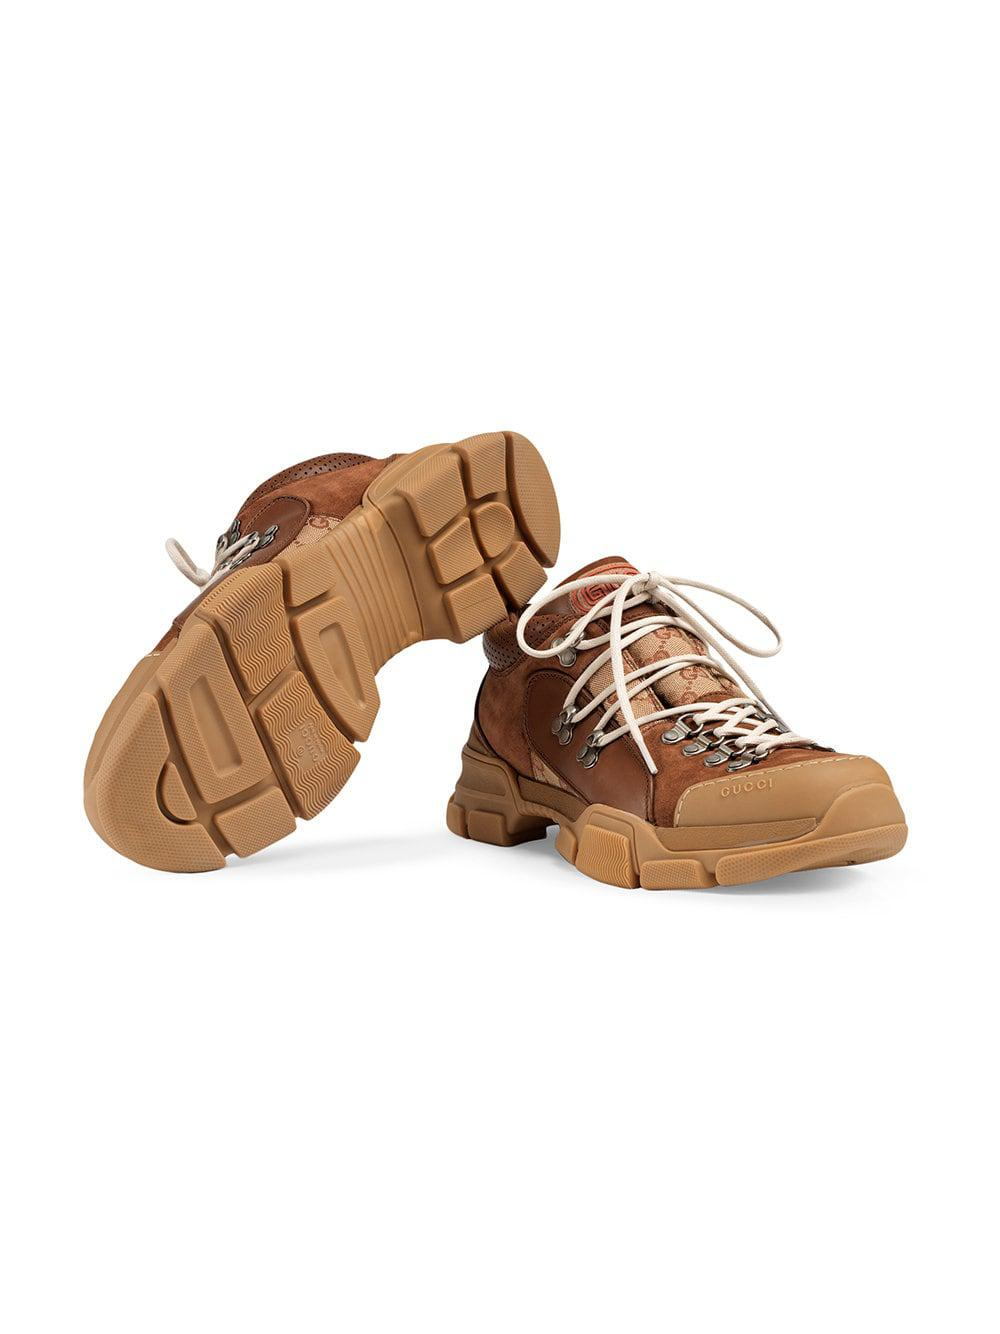 Gucci - Brown Zapatilla deportiva Flashtrek GG for Men - Lyst. Ver en  pantalla completa bd28214cec0